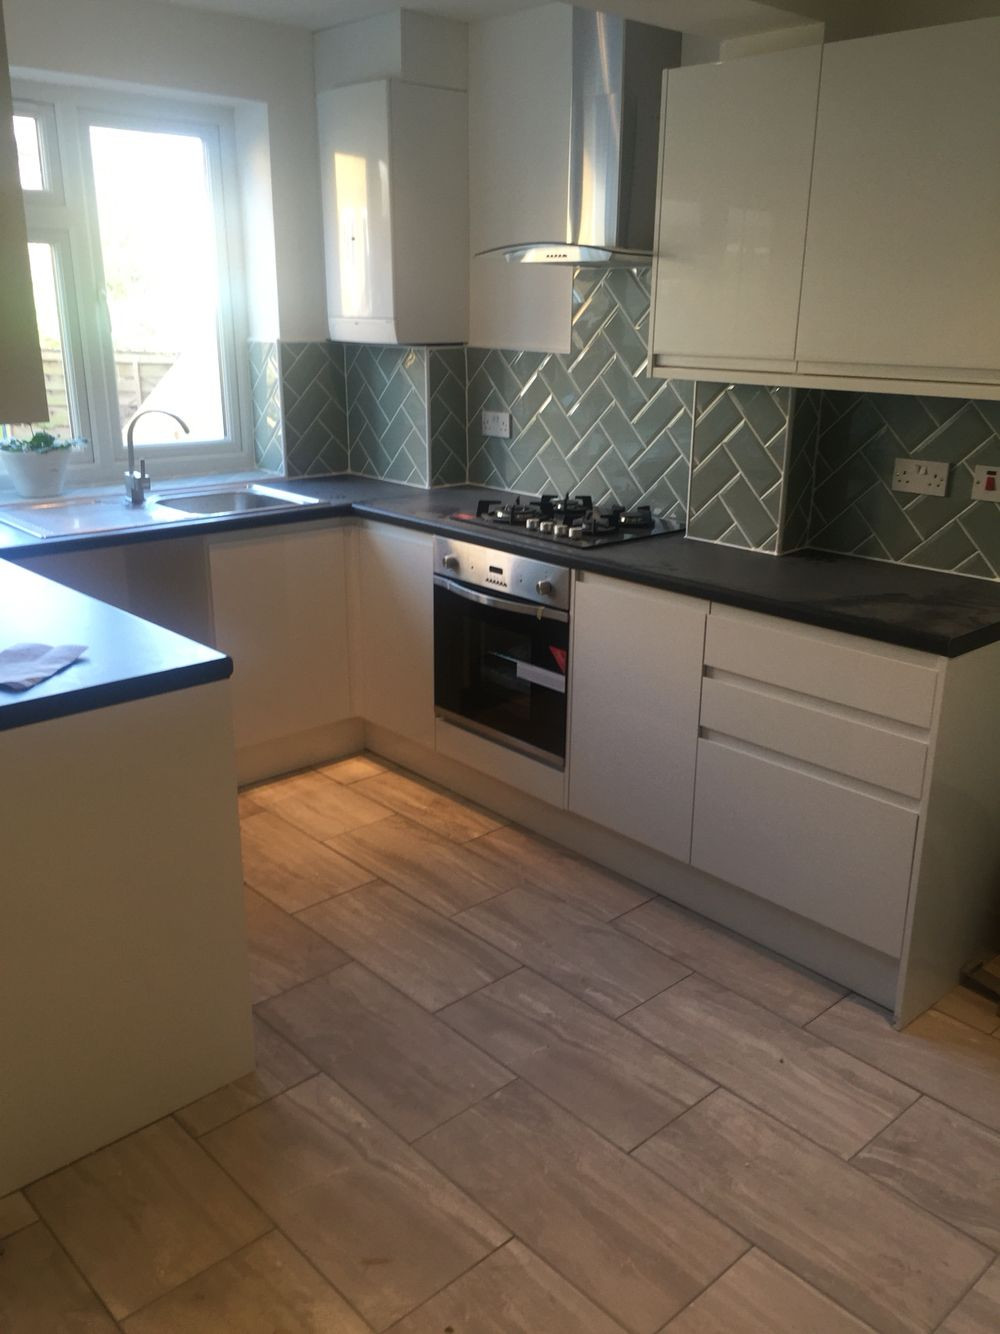 Higgins Hardwood Flooring Nh Of Handleless Gloss White Kitchen Complimented with Herringbone Duck Intended for Handleless Gloss White Kitchen Complimented with Herringbone Duck Egg Metro Wall Tiles with Stone Effect Floor Tiles